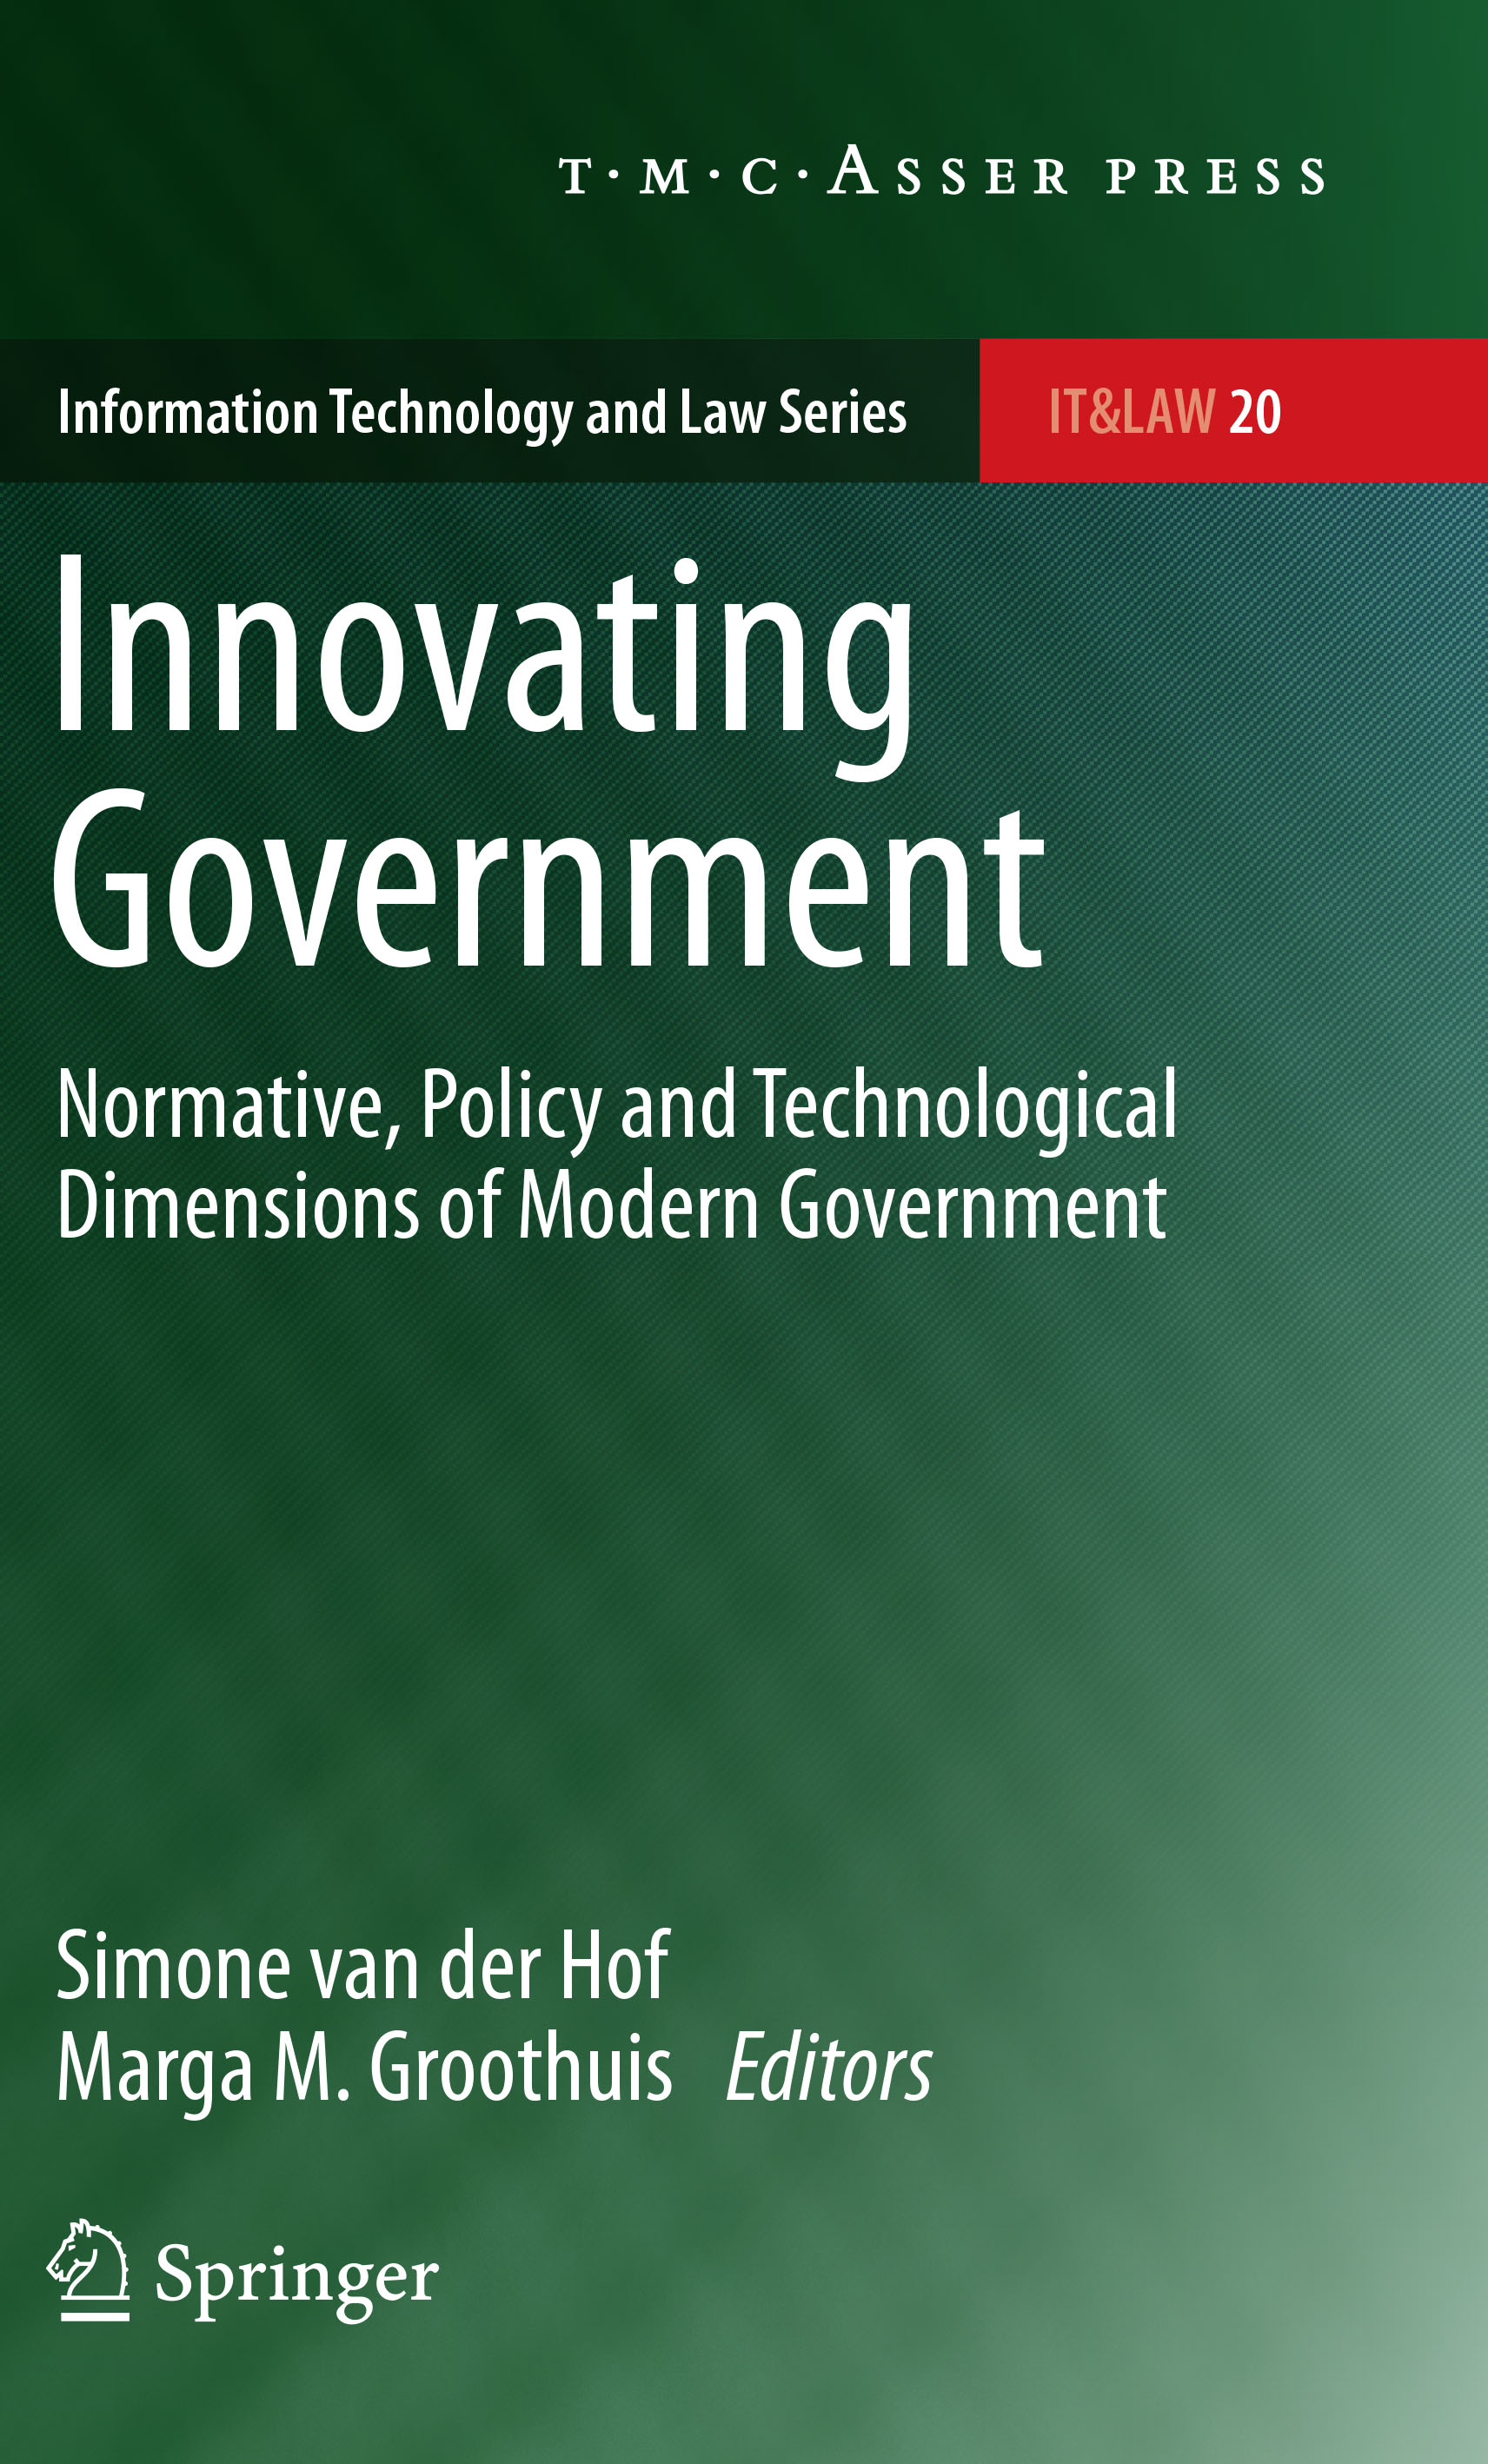 Innovating Government - Normative, Policy and Technological Dimensions of Modern Government